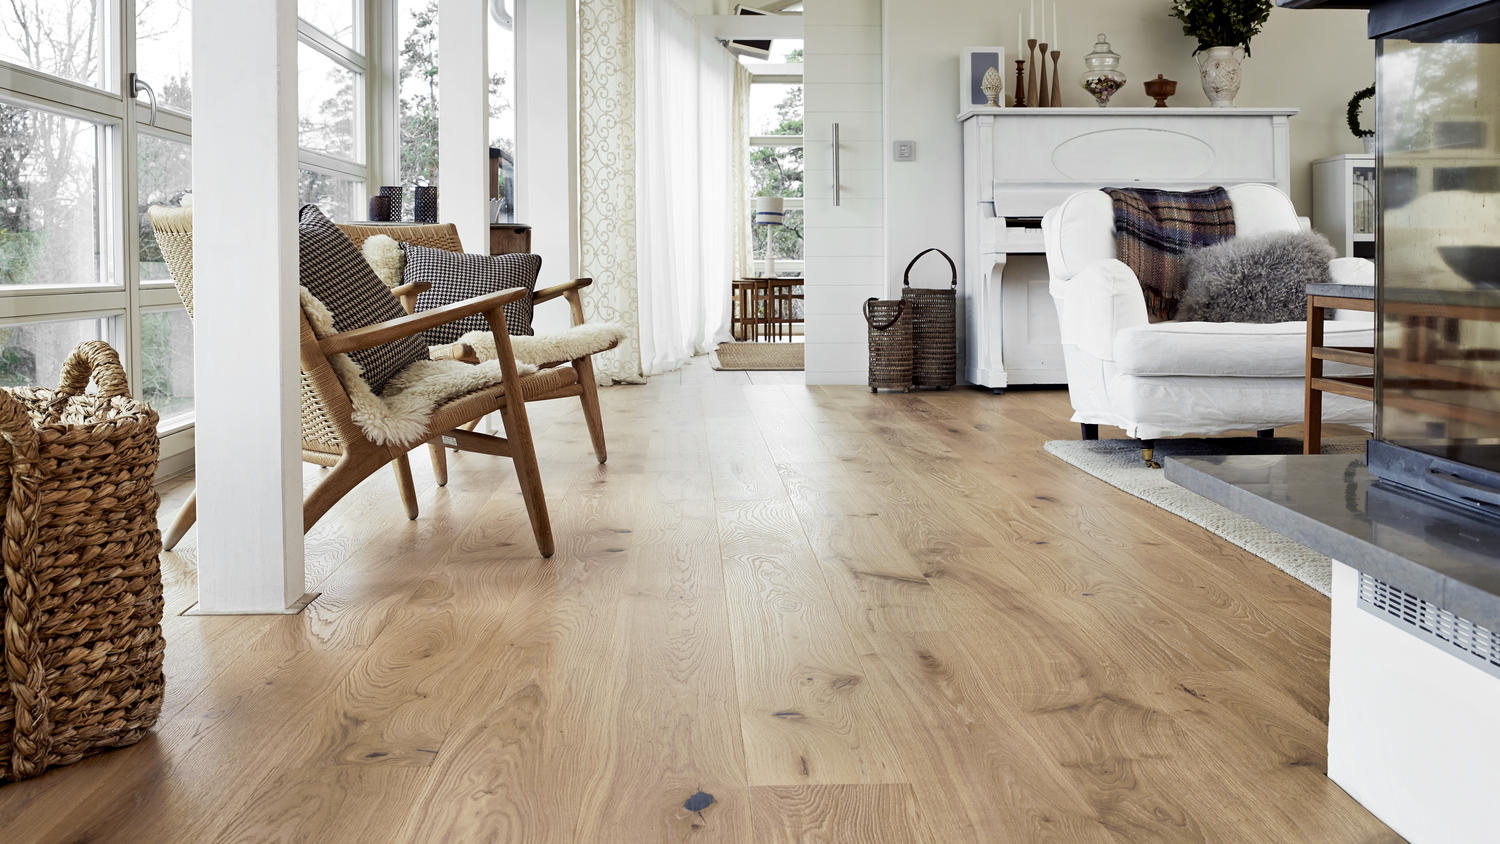 chose installation misty tarkett style design frostedblog vinyl floor floors wood which nelson see via we plank home why flooring look and by new diy